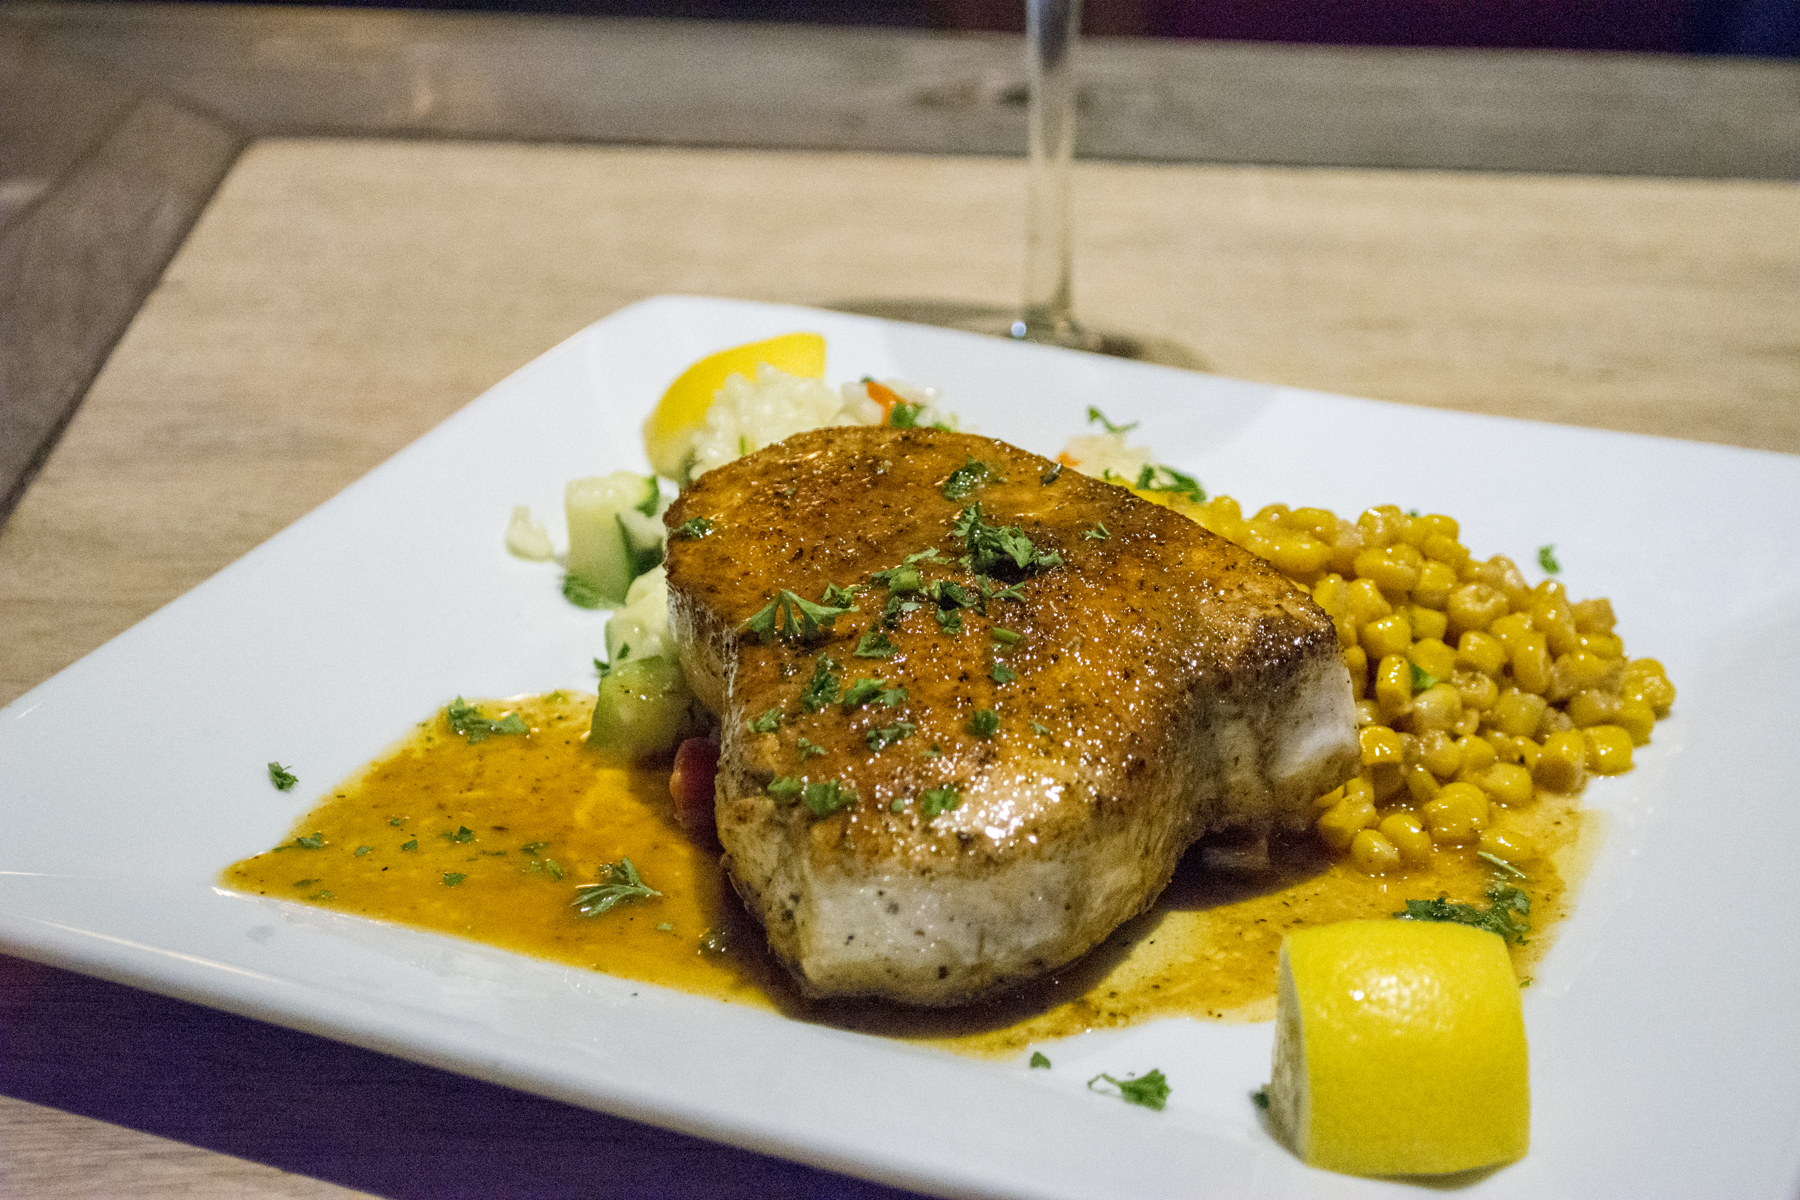 The Blackened Swordfish ($32) is served over vegetable risotto and Caribbean corn.   Long Islander News photos/Barbara Fiore